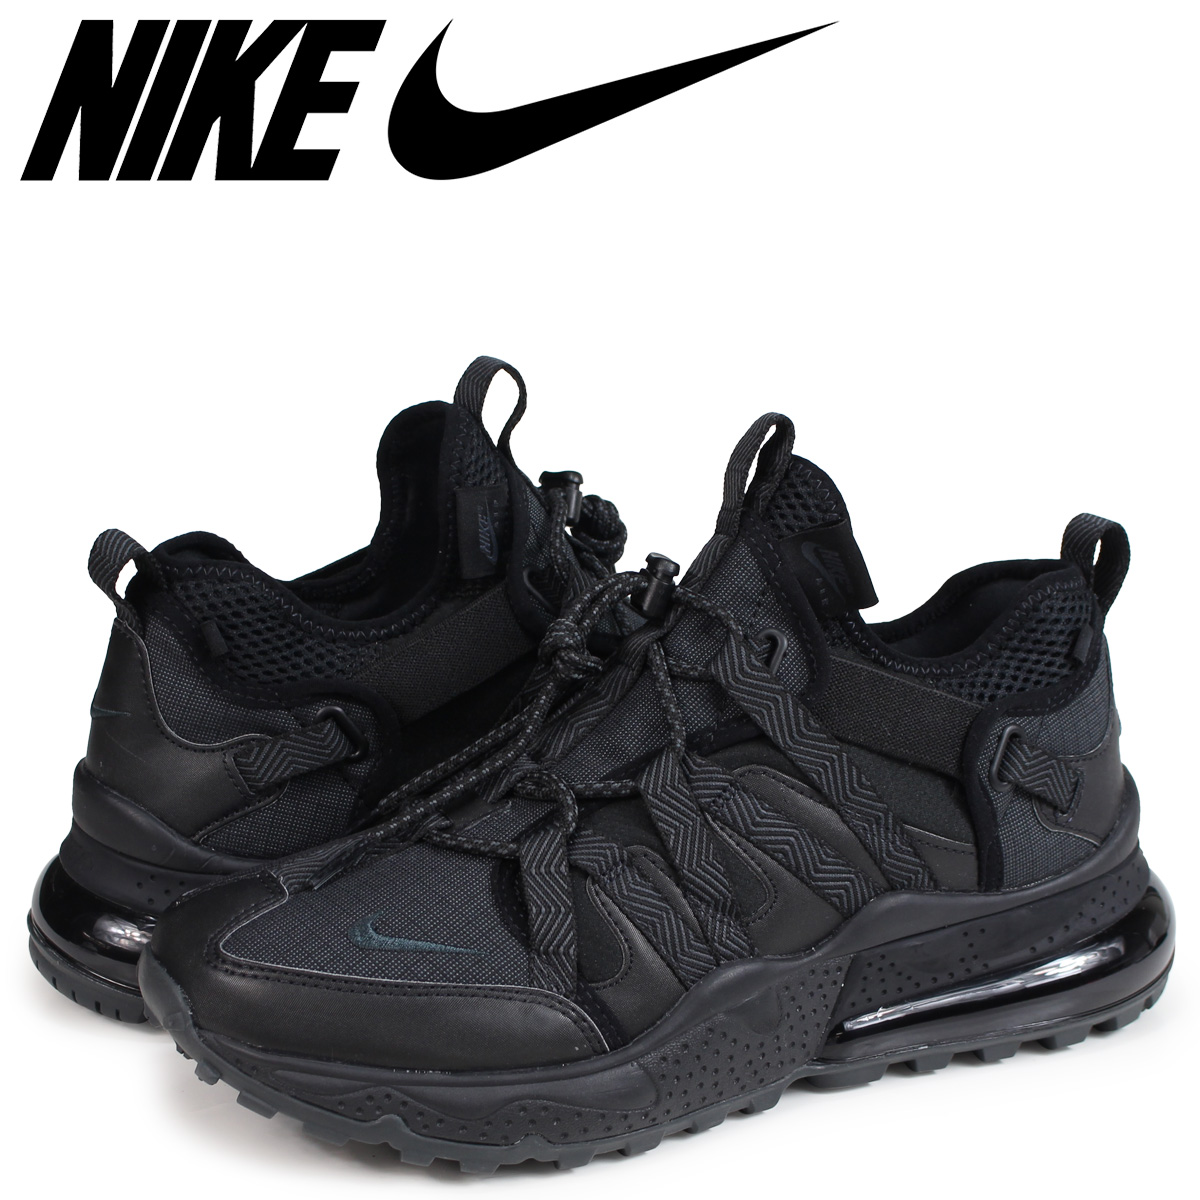 new product e9c32 af5be NIKE AIR MAX 270 BOWFIN Kie Ney AMAX 270 premium sneakers men AJ7200-005  black